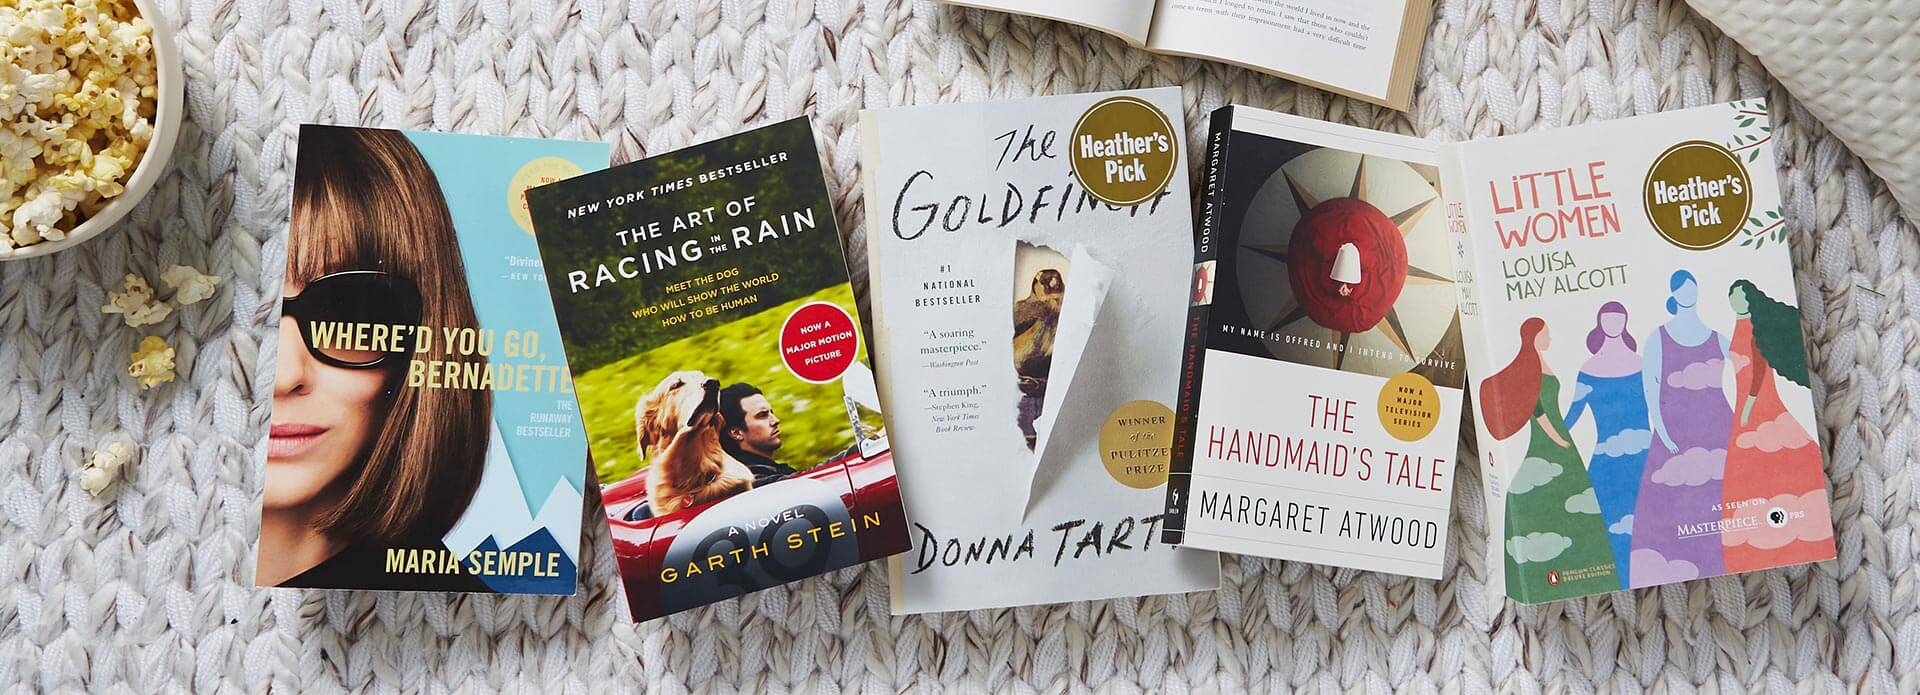 A flat lay of books on a white rug, including Where'd You Go, Bernadette, Little Women, The Handmaid's Tale, The Goldfinch, and The Art of Racing in the Rain.